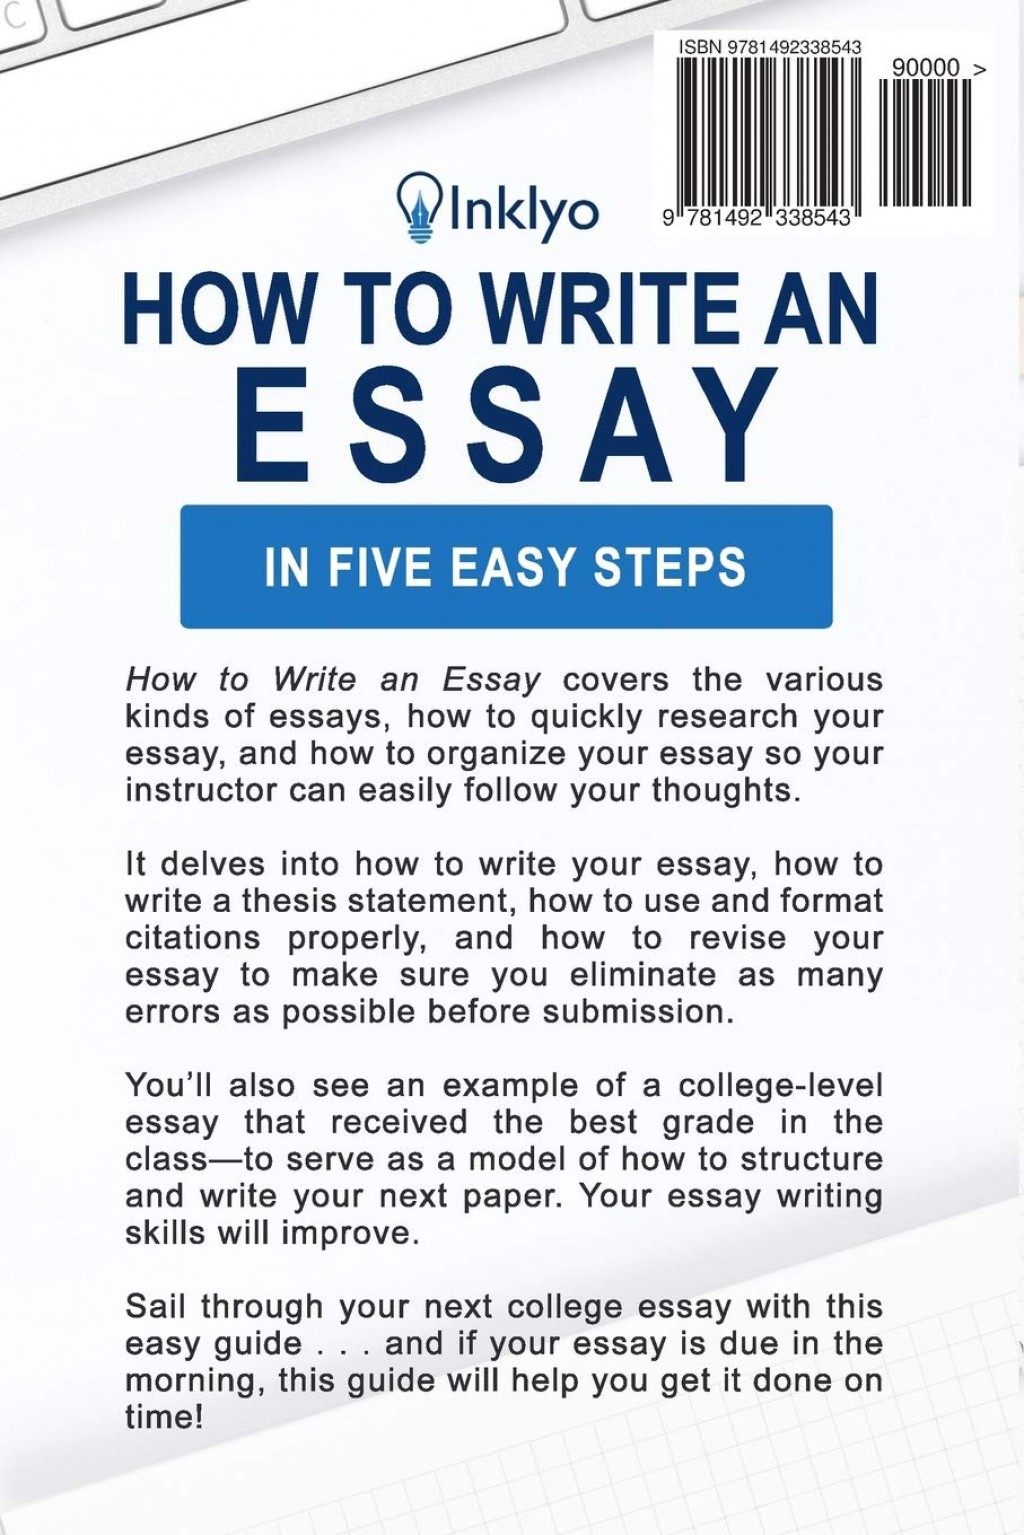 006 71v7ckw5pll How To Write An Essay Quickly Unbelievable English Very Large